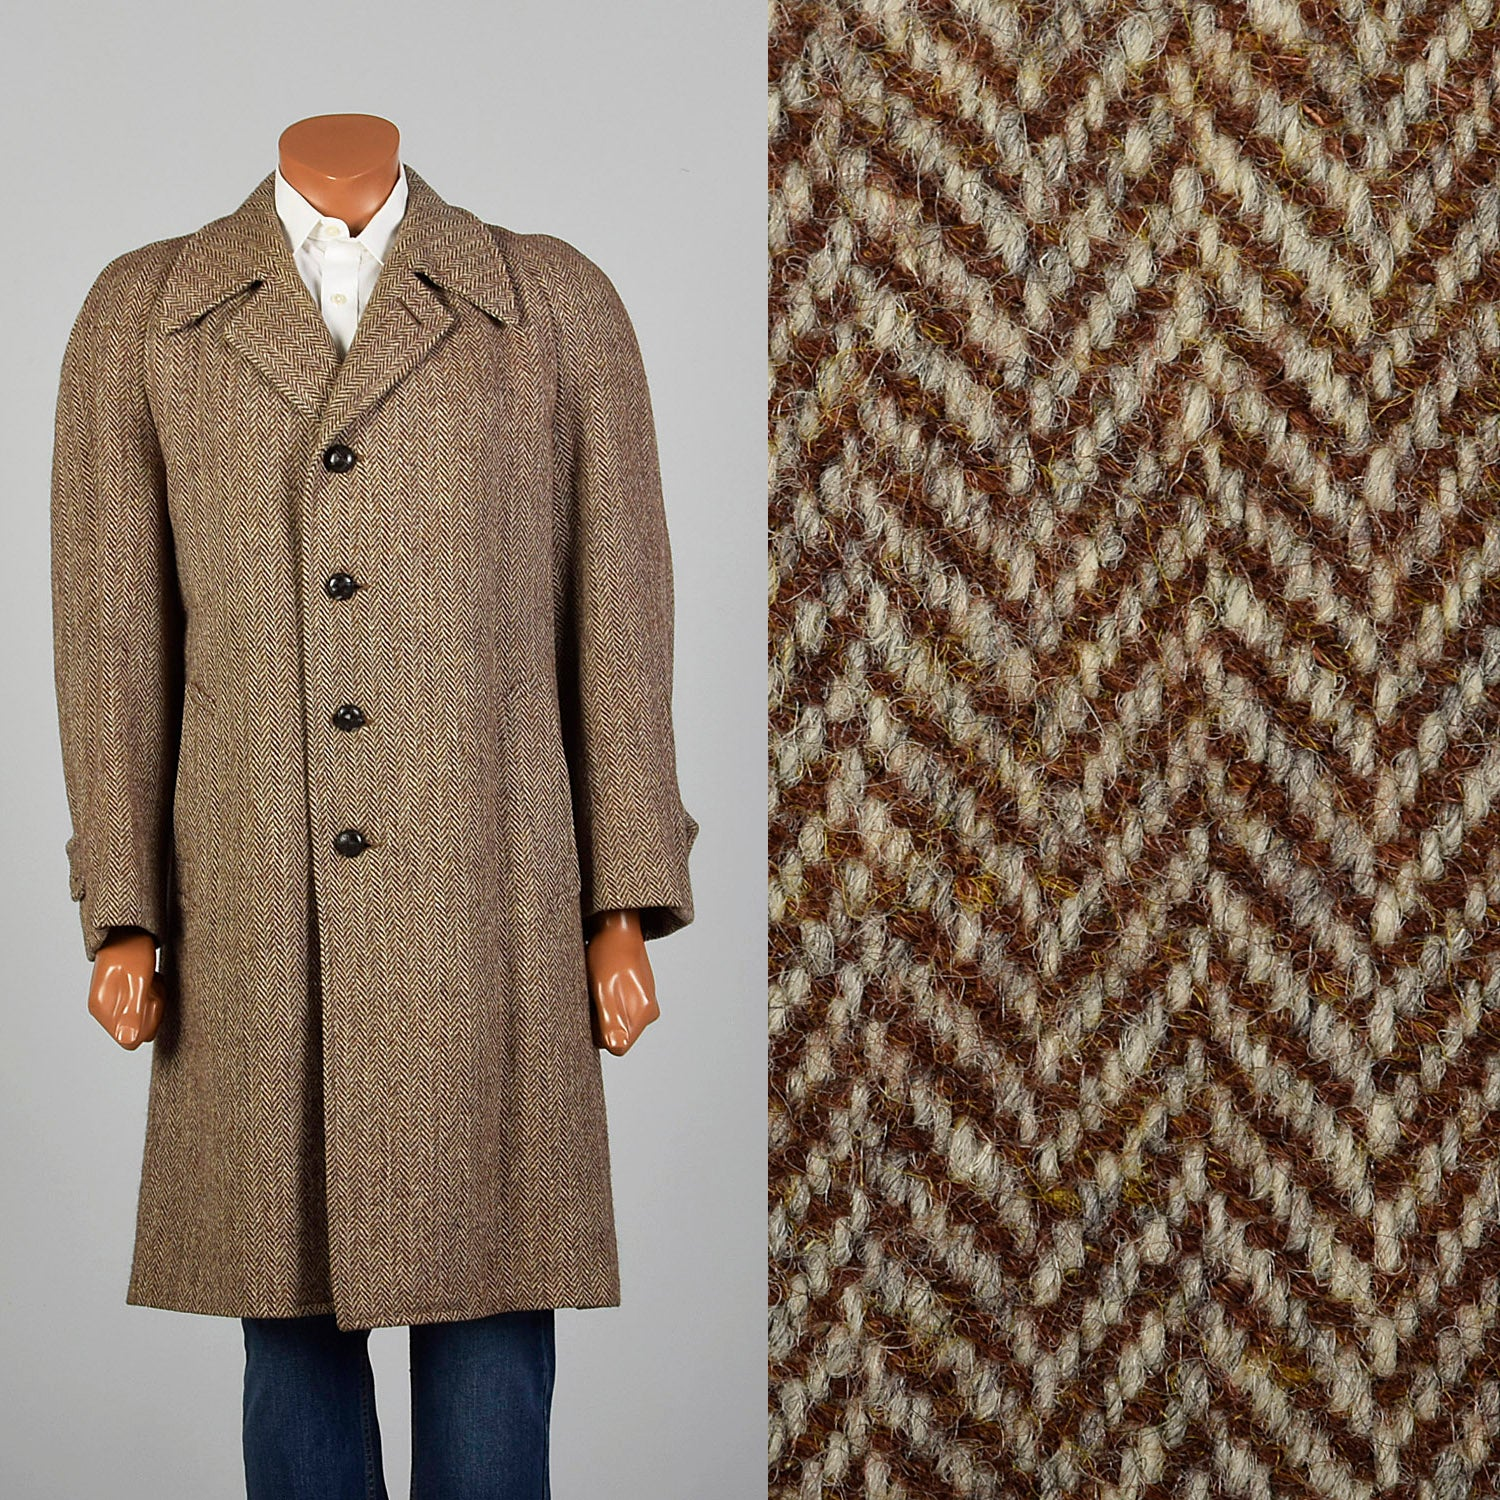 41 Medium 1950s Mens Brown Wool Tweed Coat